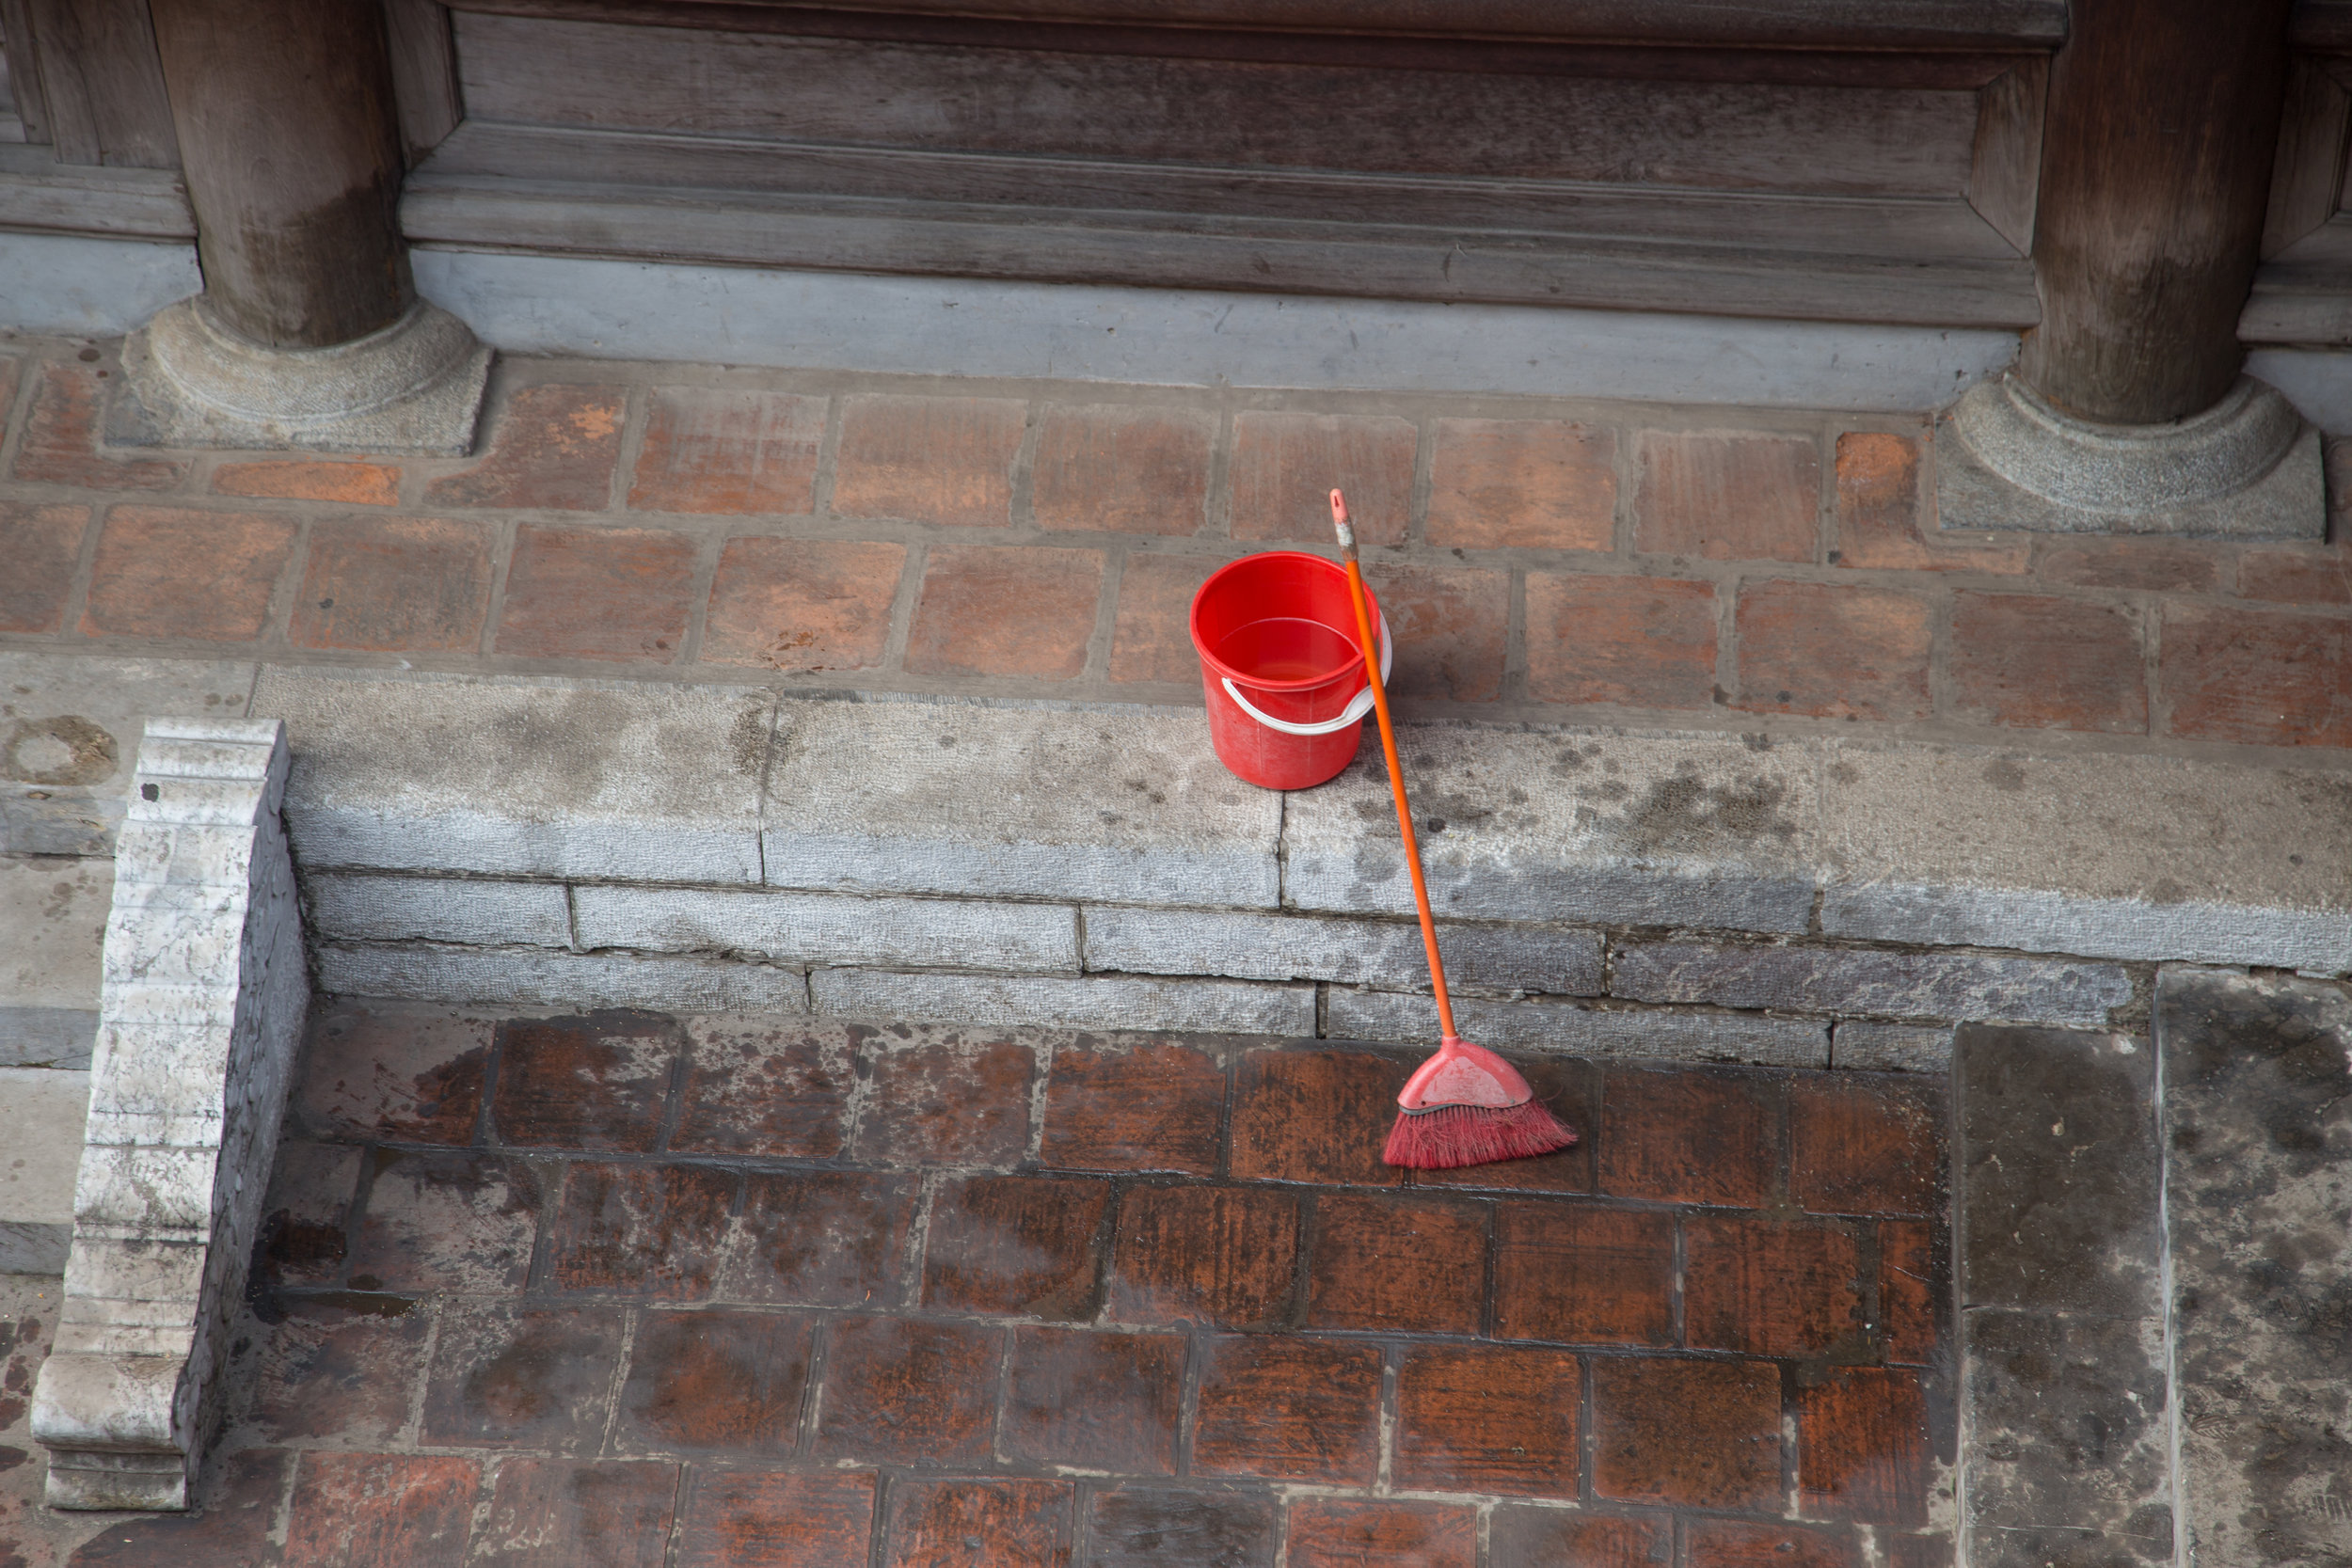 Cleaning up, The Temple of Literature, Hanoi, Vietnam, 2018 Copyright Monica d. Church